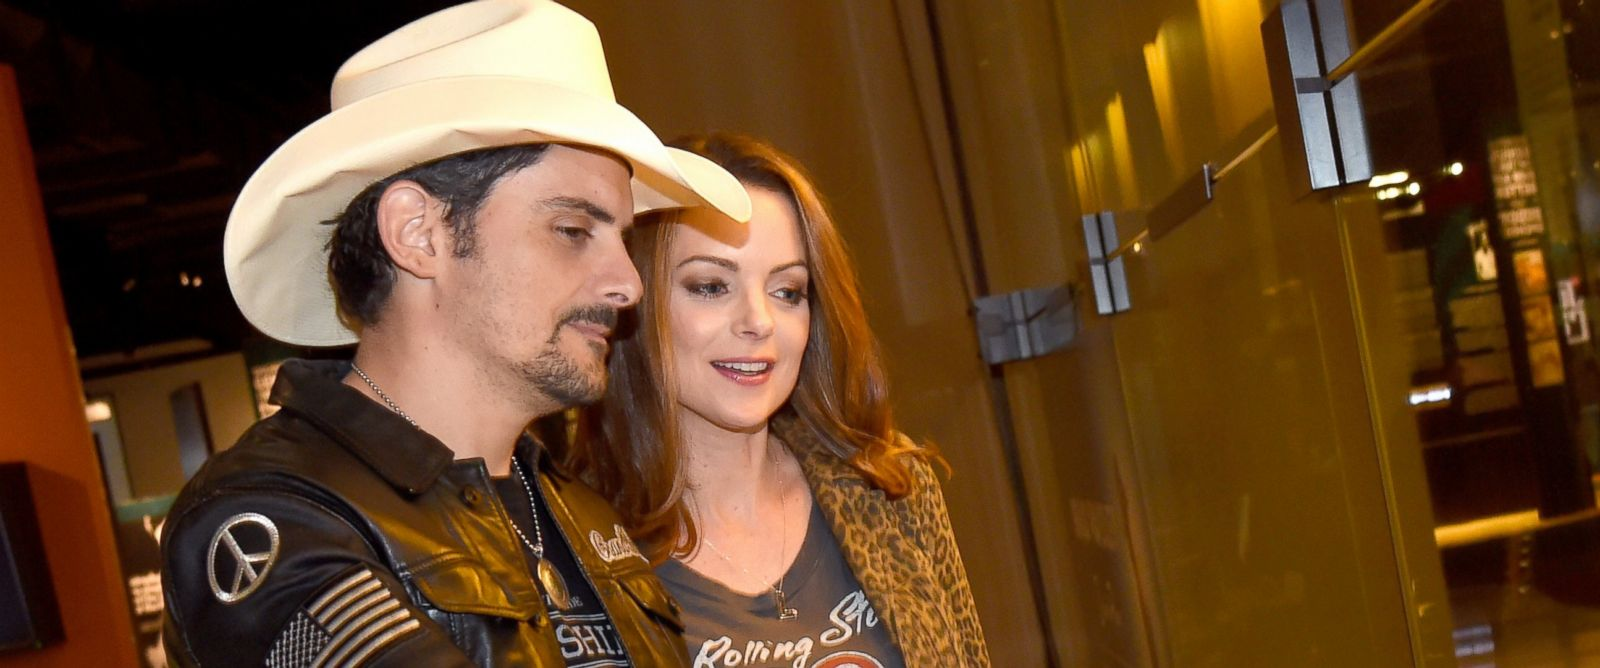 Brad paisley 39 touched 39 by support after death of kimberly for List of dead country music singers